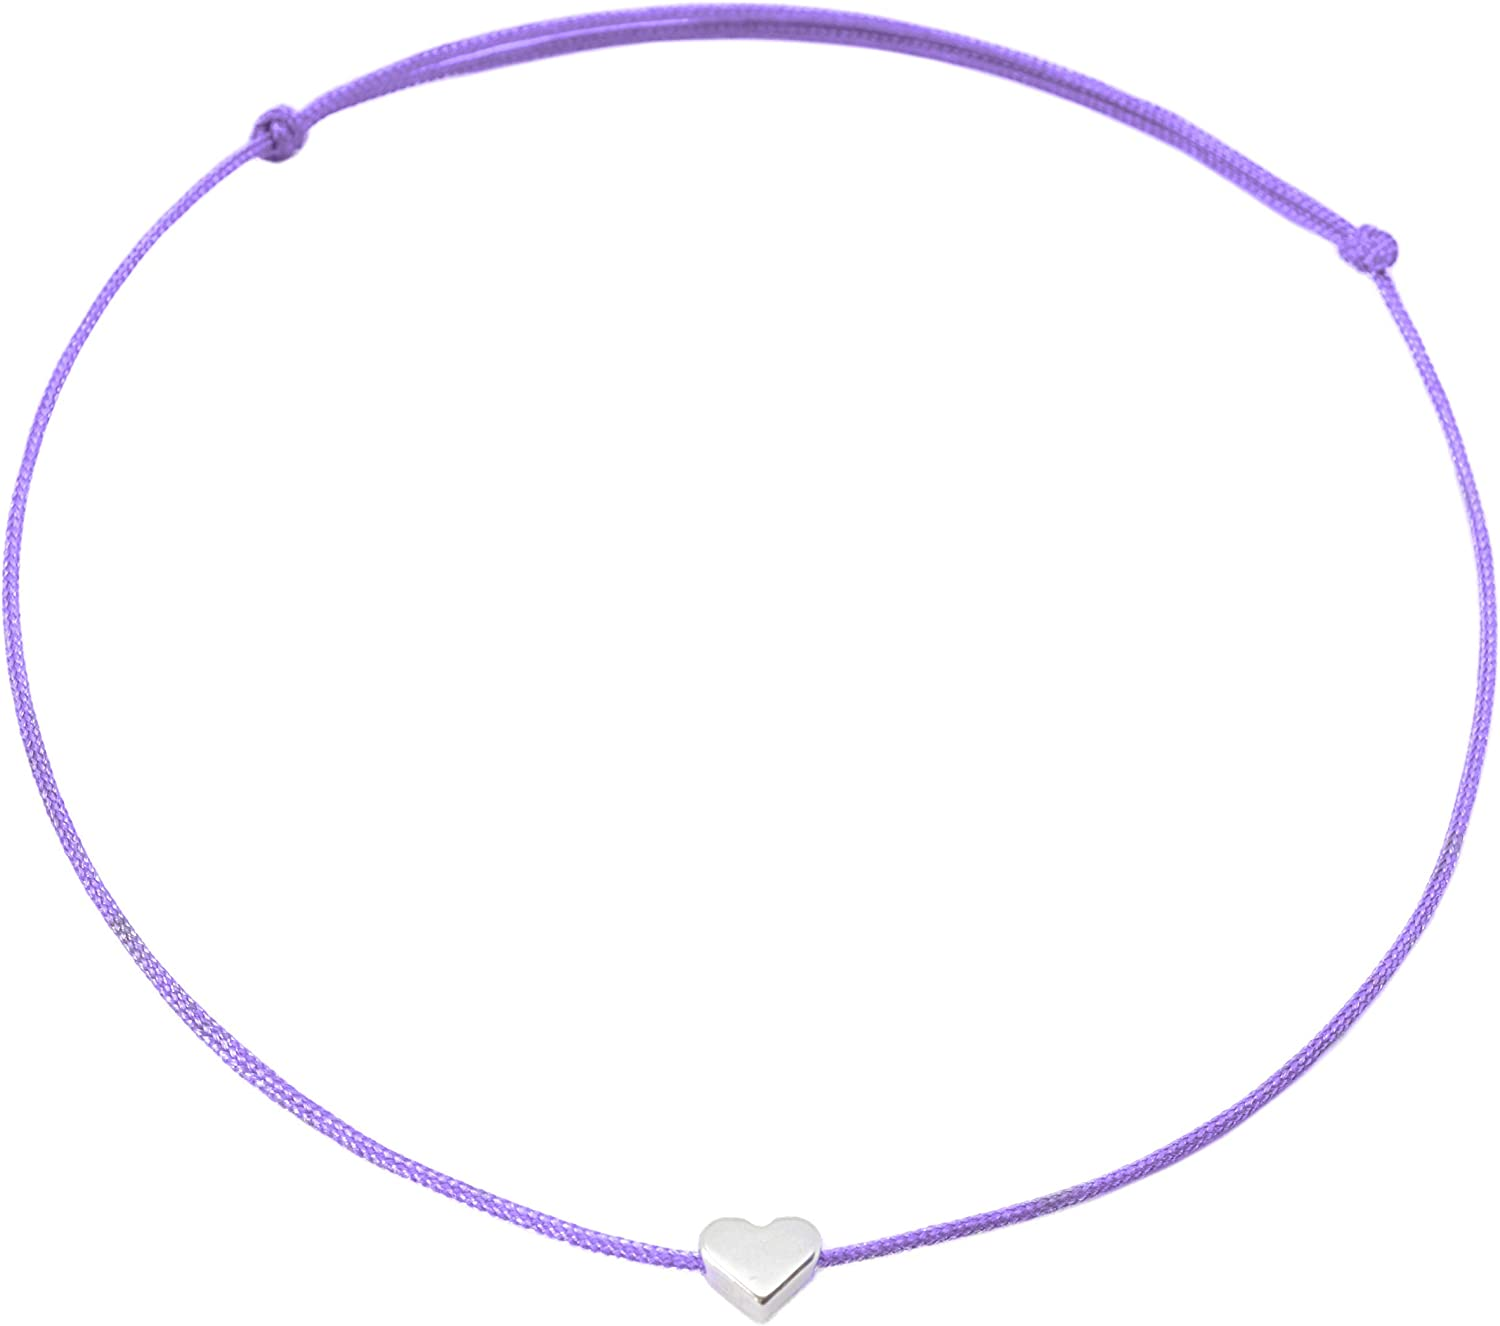 18K Gold Plated//316L Stainless Steel Teen Girls//Women Jewelry PROSTEEL Heart Double Layer Anklets Send Gift Box